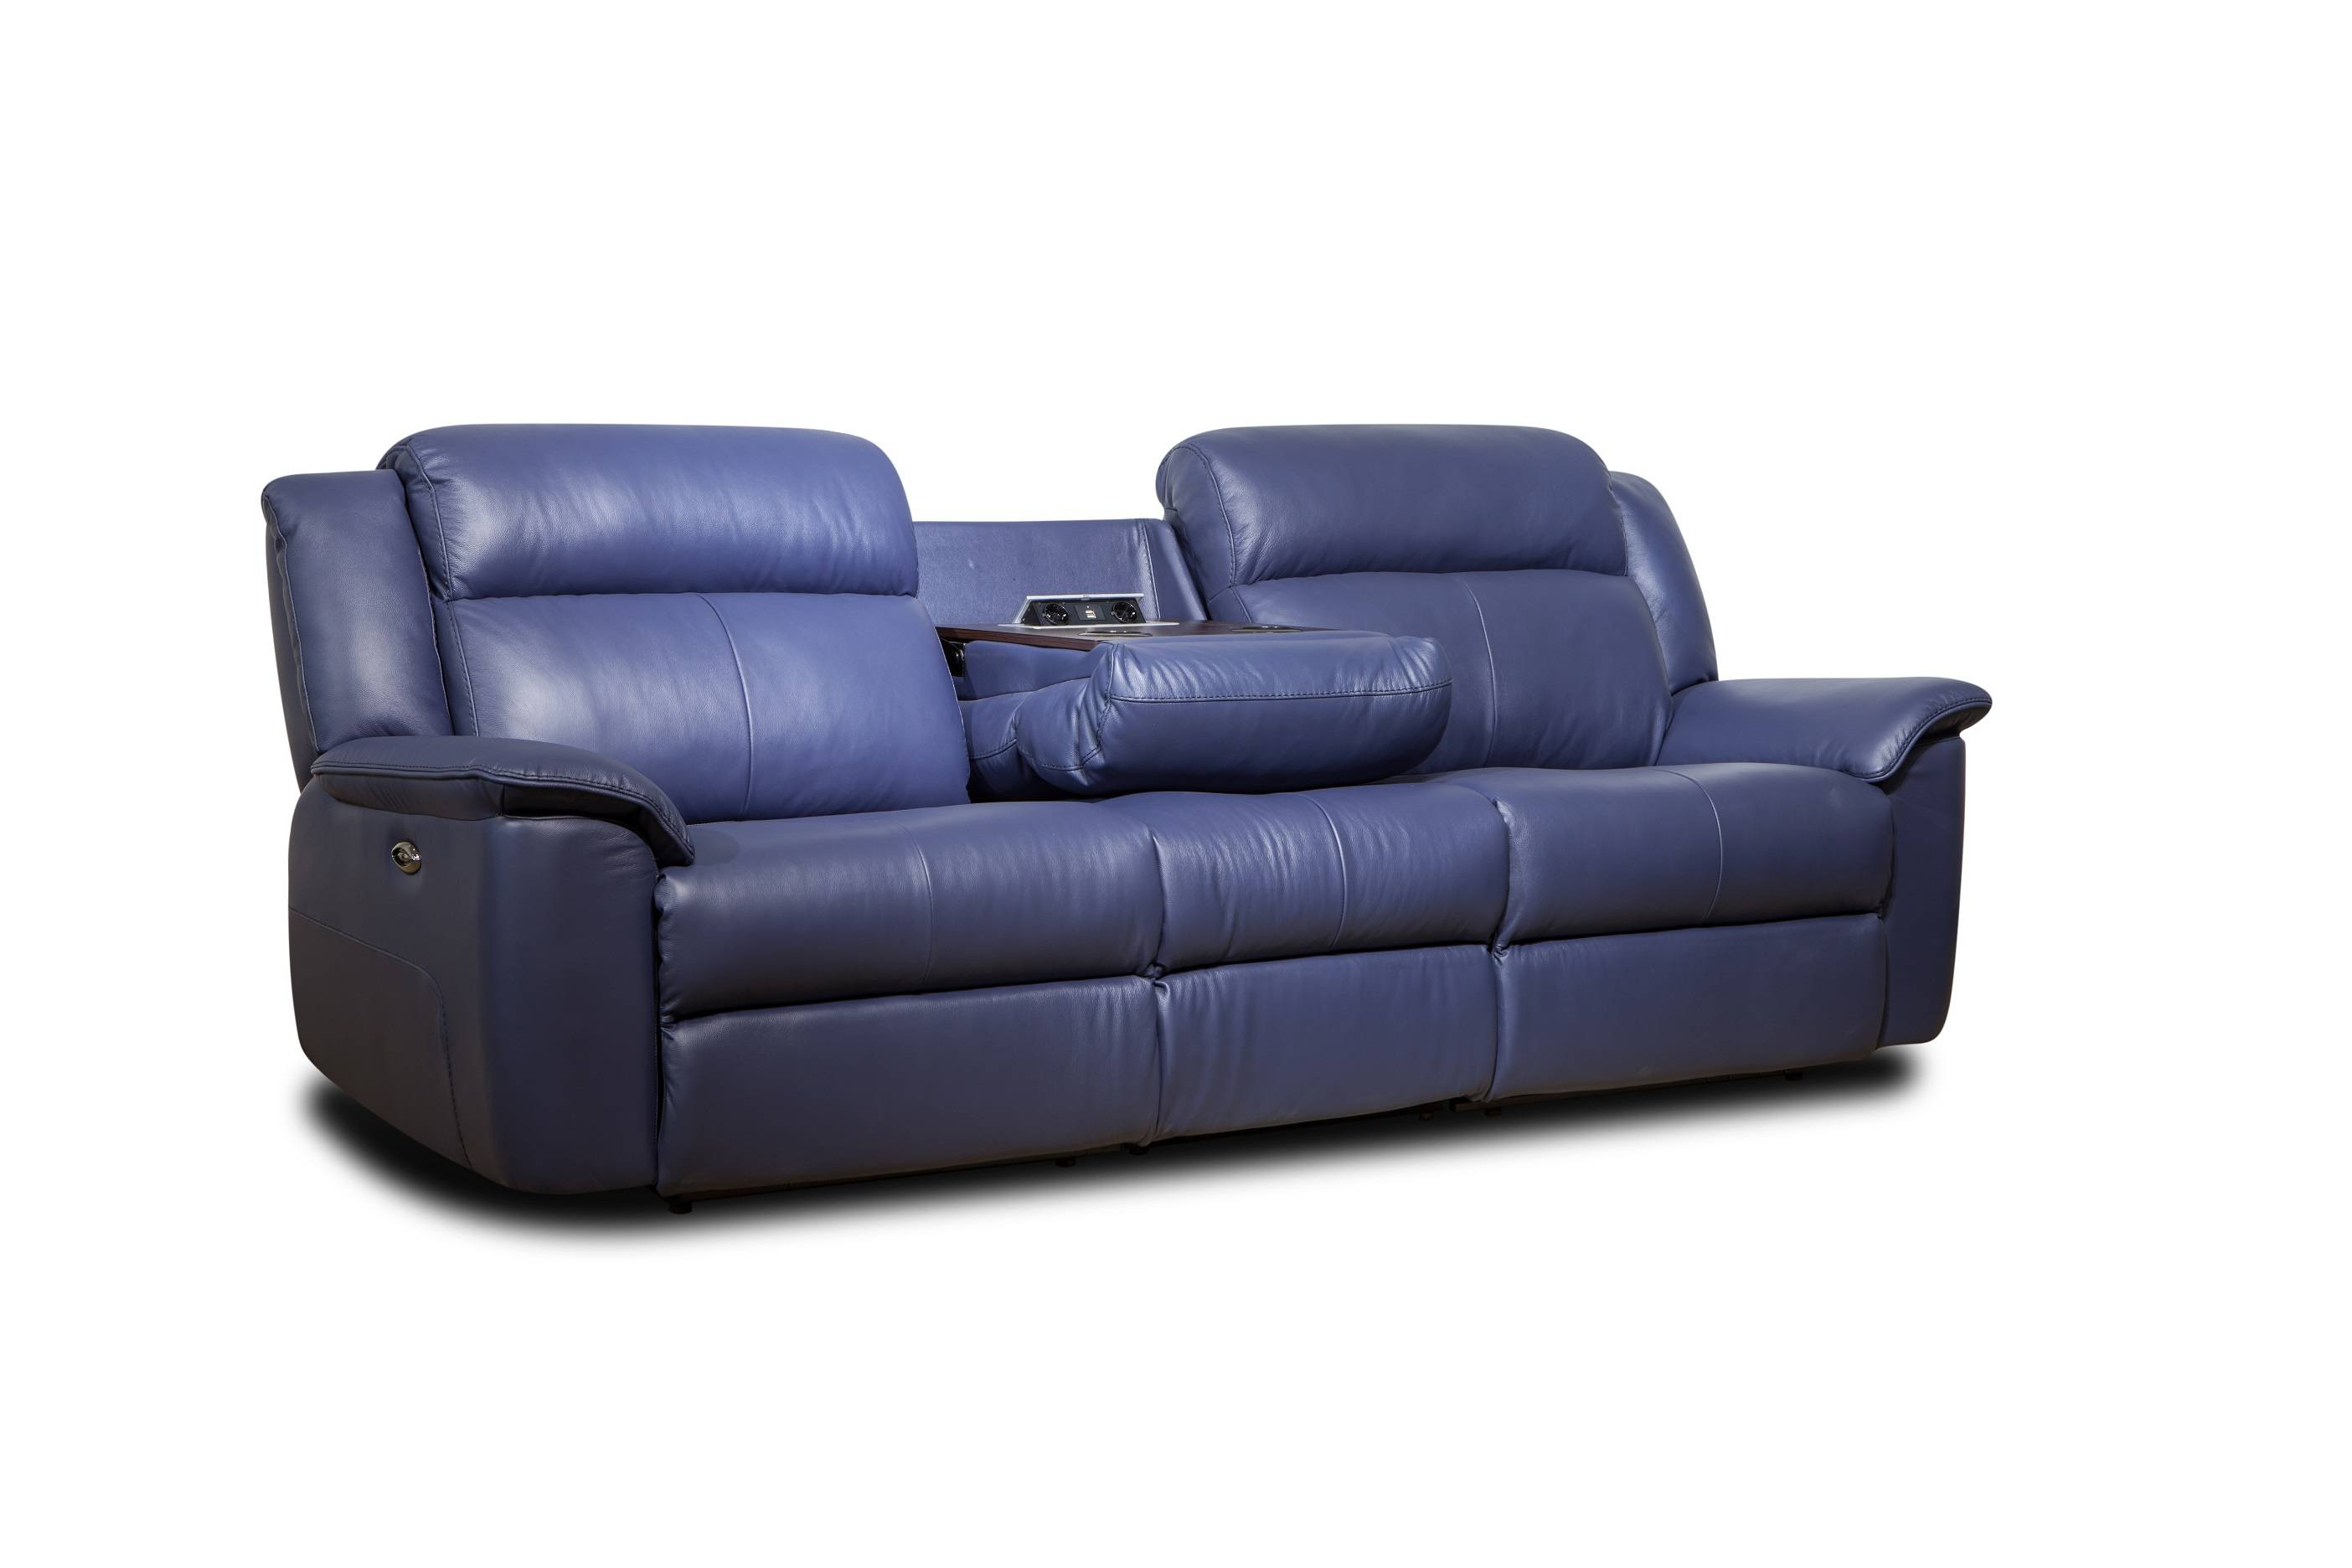 Modern high quality electric 3 seater leather recliner sofa